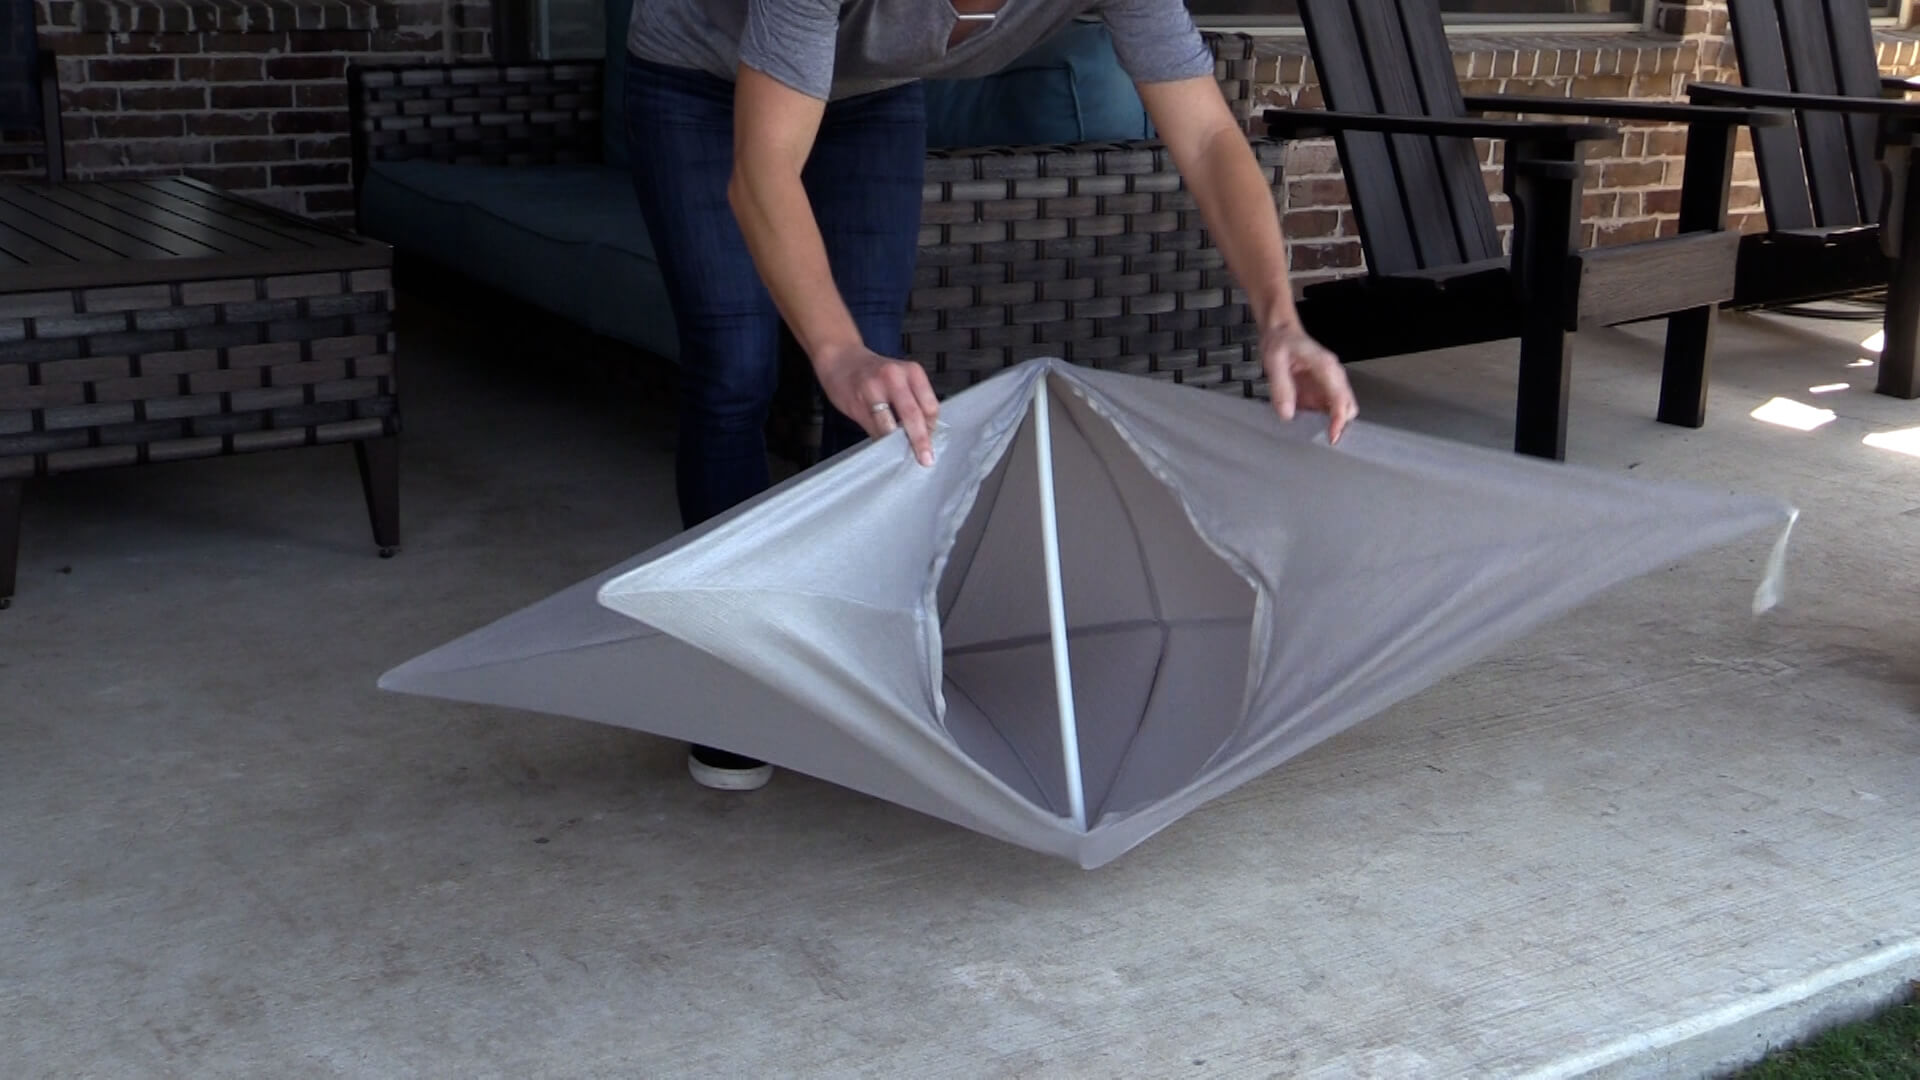 3 Dimensional Foldable Stars Offer Amazing Versatility at a Great Price